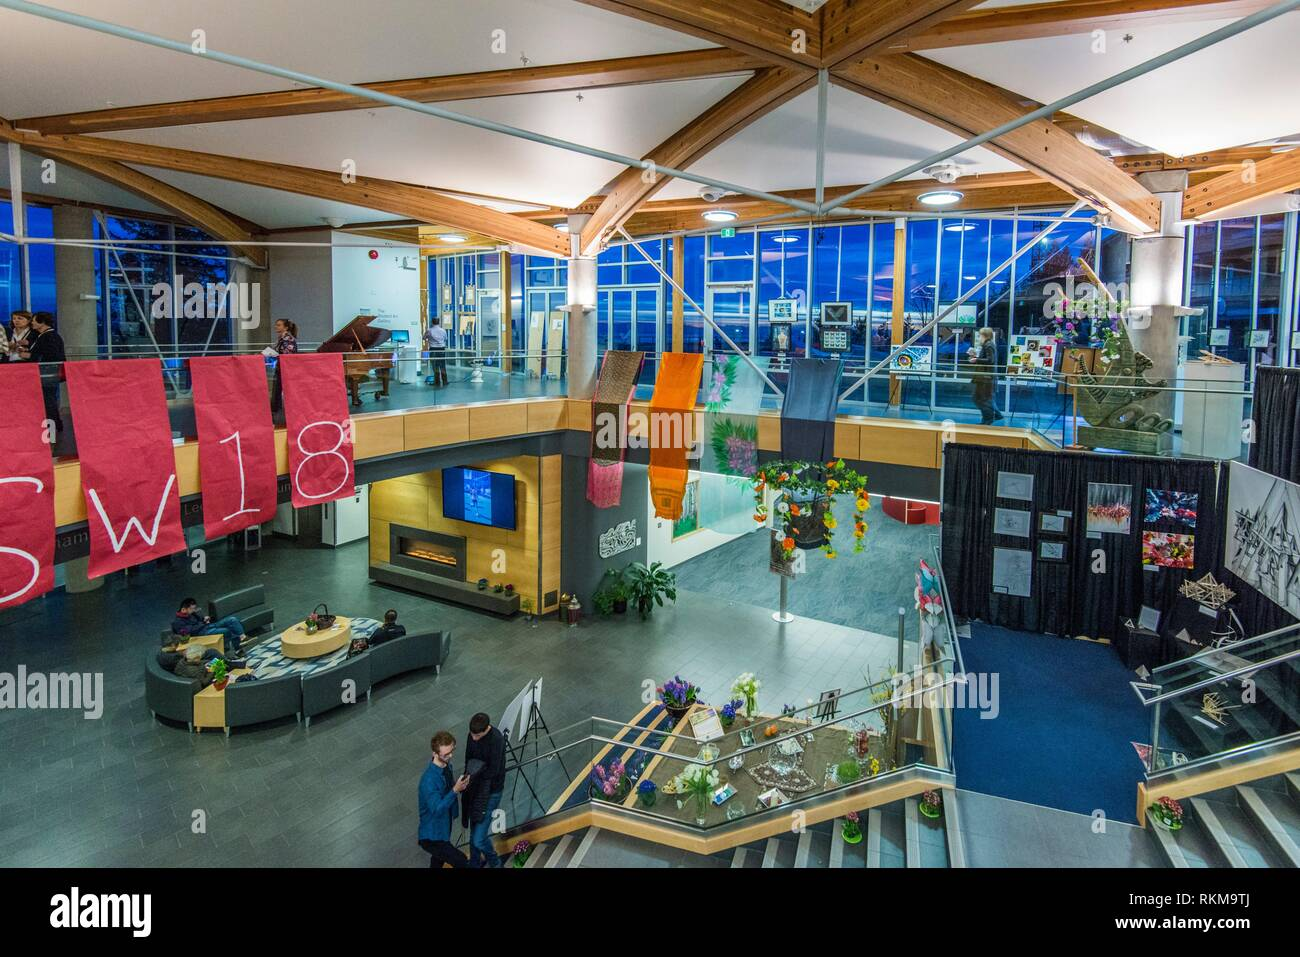 Interior Lobby Of A School In West Vancouver Bc Canada Stock Photo Alamy